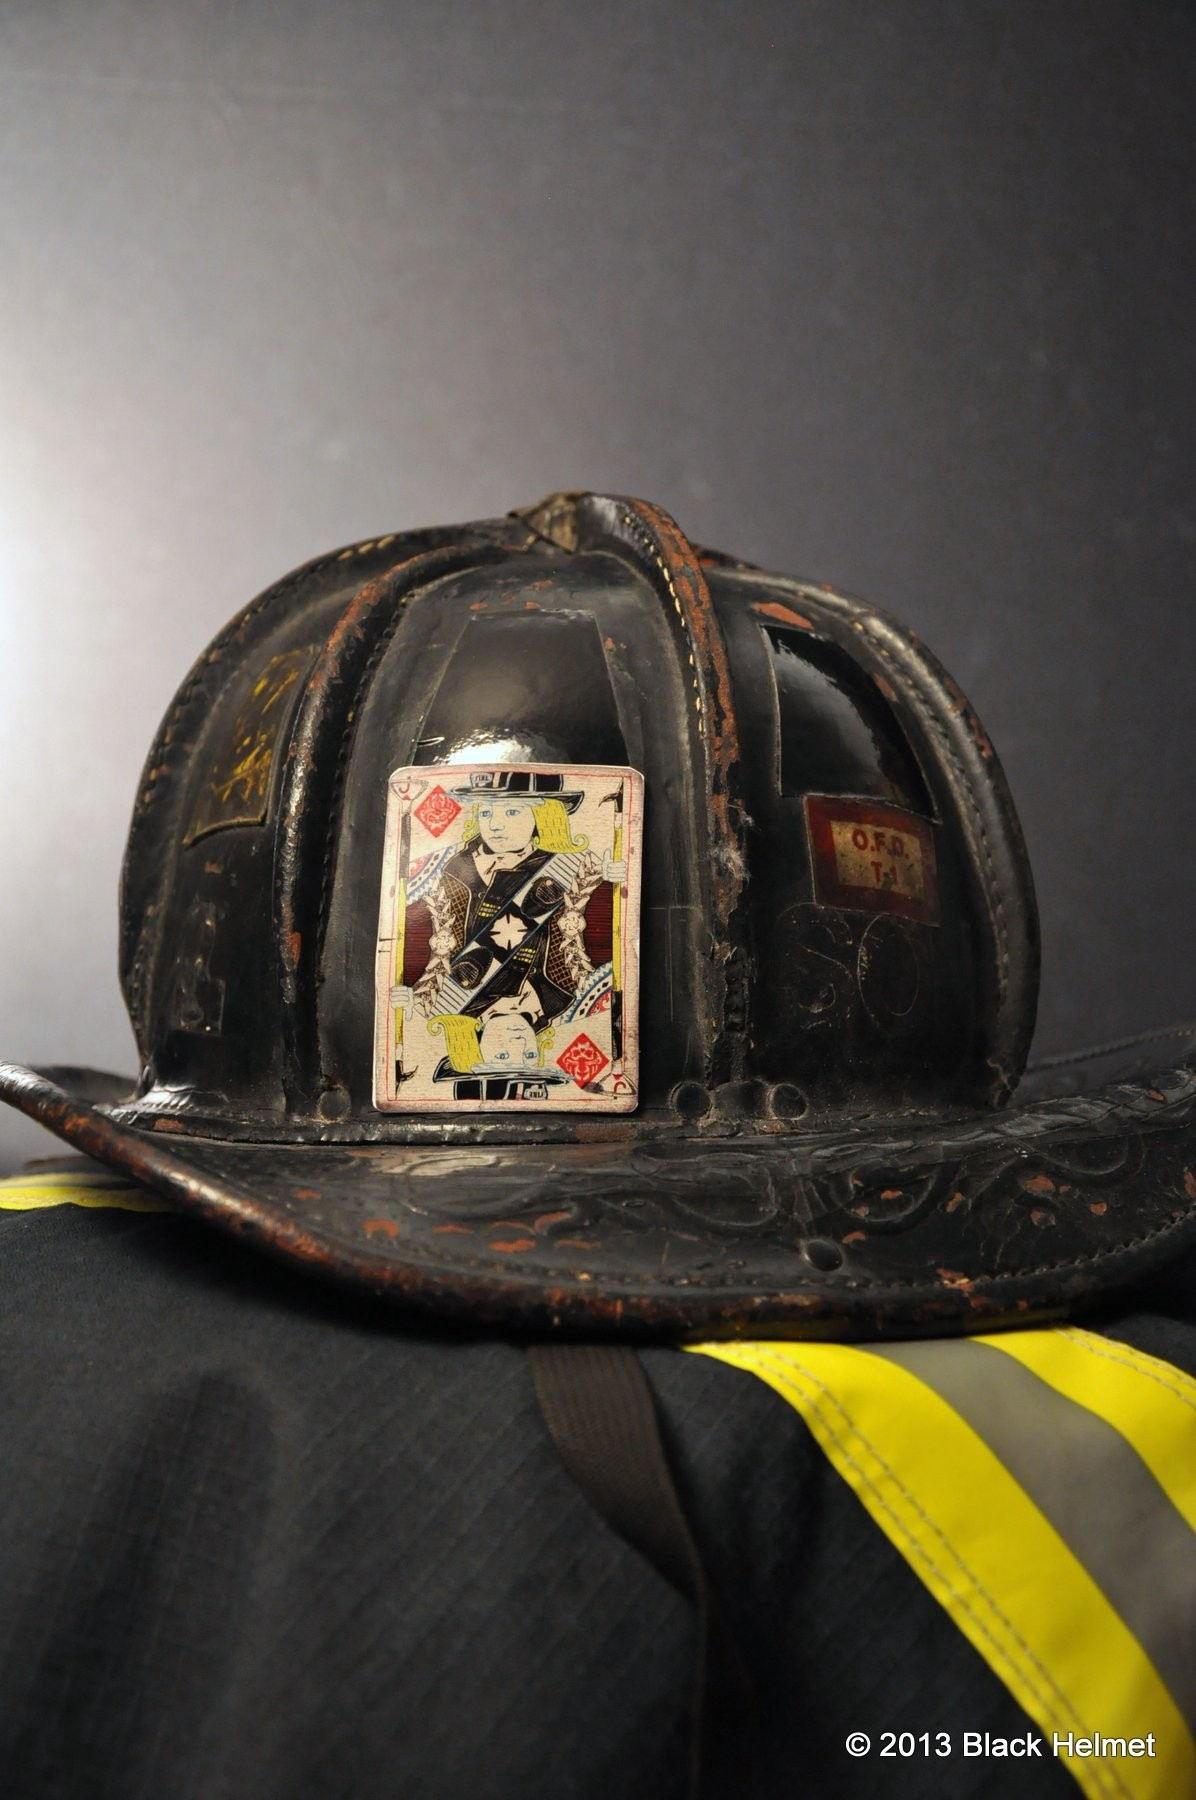 Have You Ever Seen a Cat Skeleton in a Tree? The Impact of the Fire Service's Growing Mission.